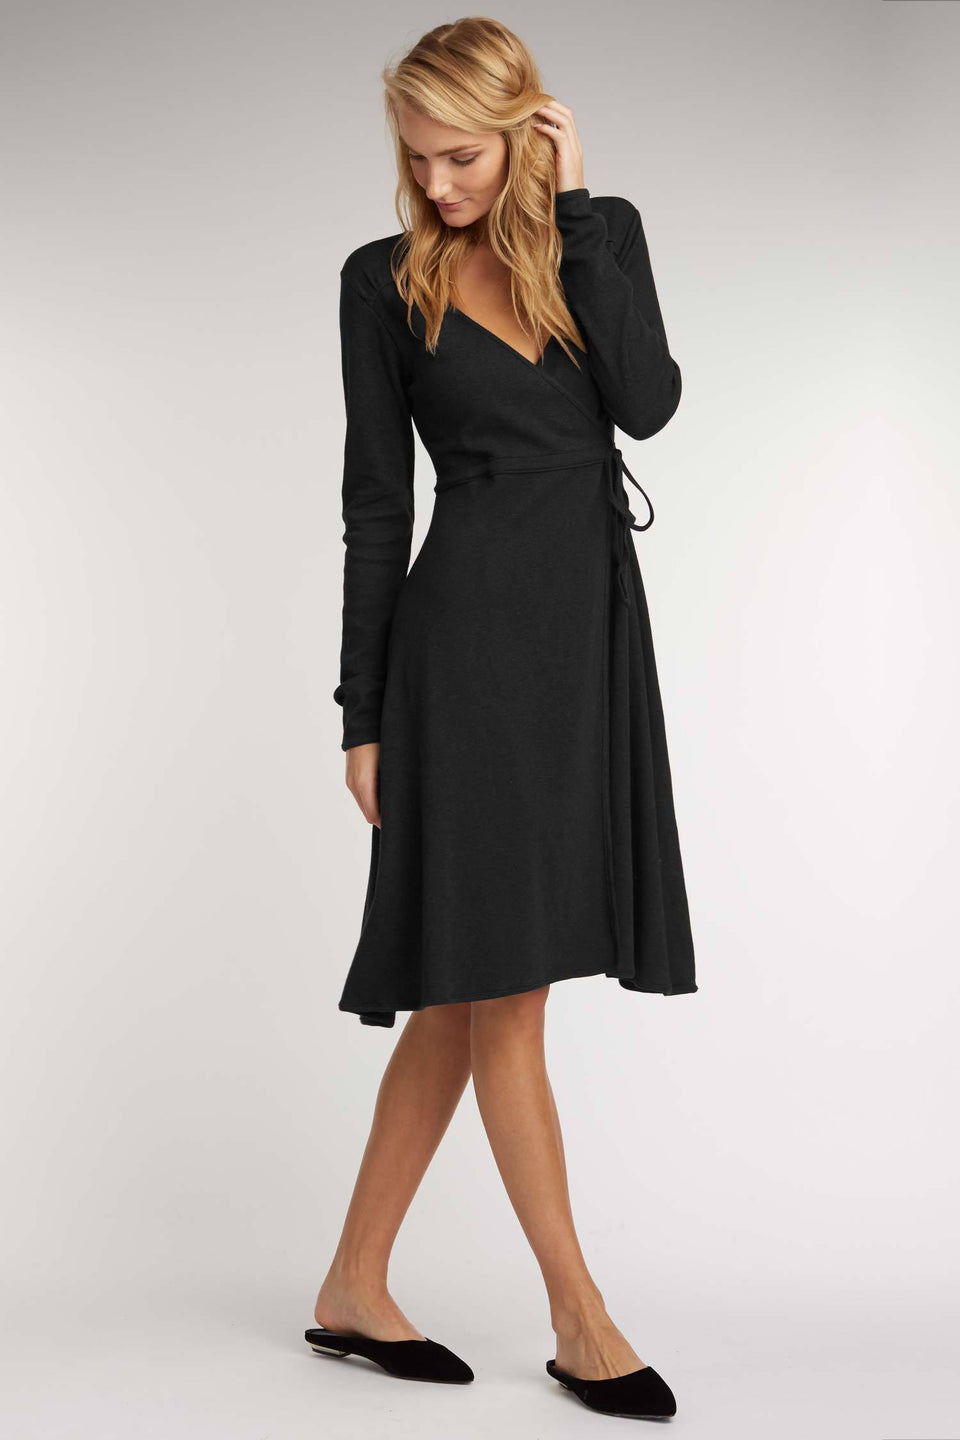 Ruched Tie Dress in Black